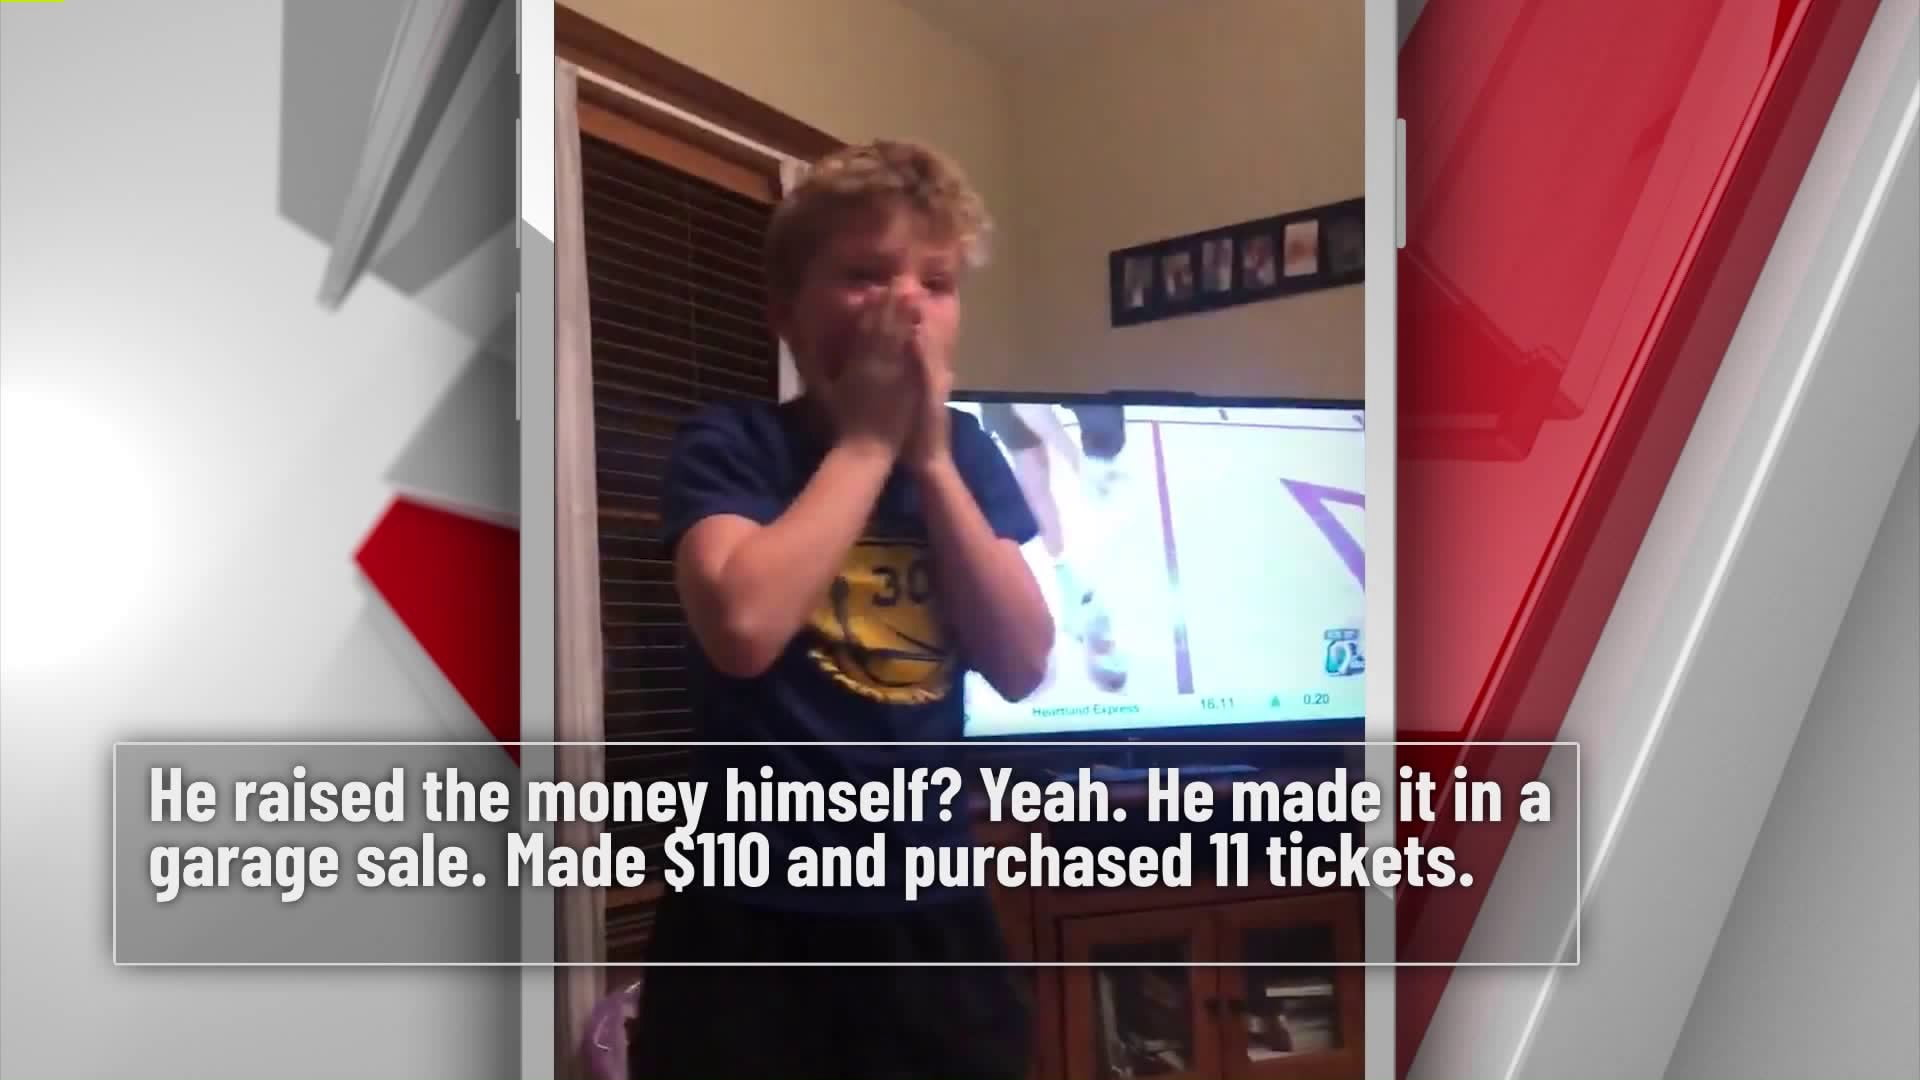 See Iowa Boy's Stunned Reaction to Winning Jordan Bohannon's Shoes 29